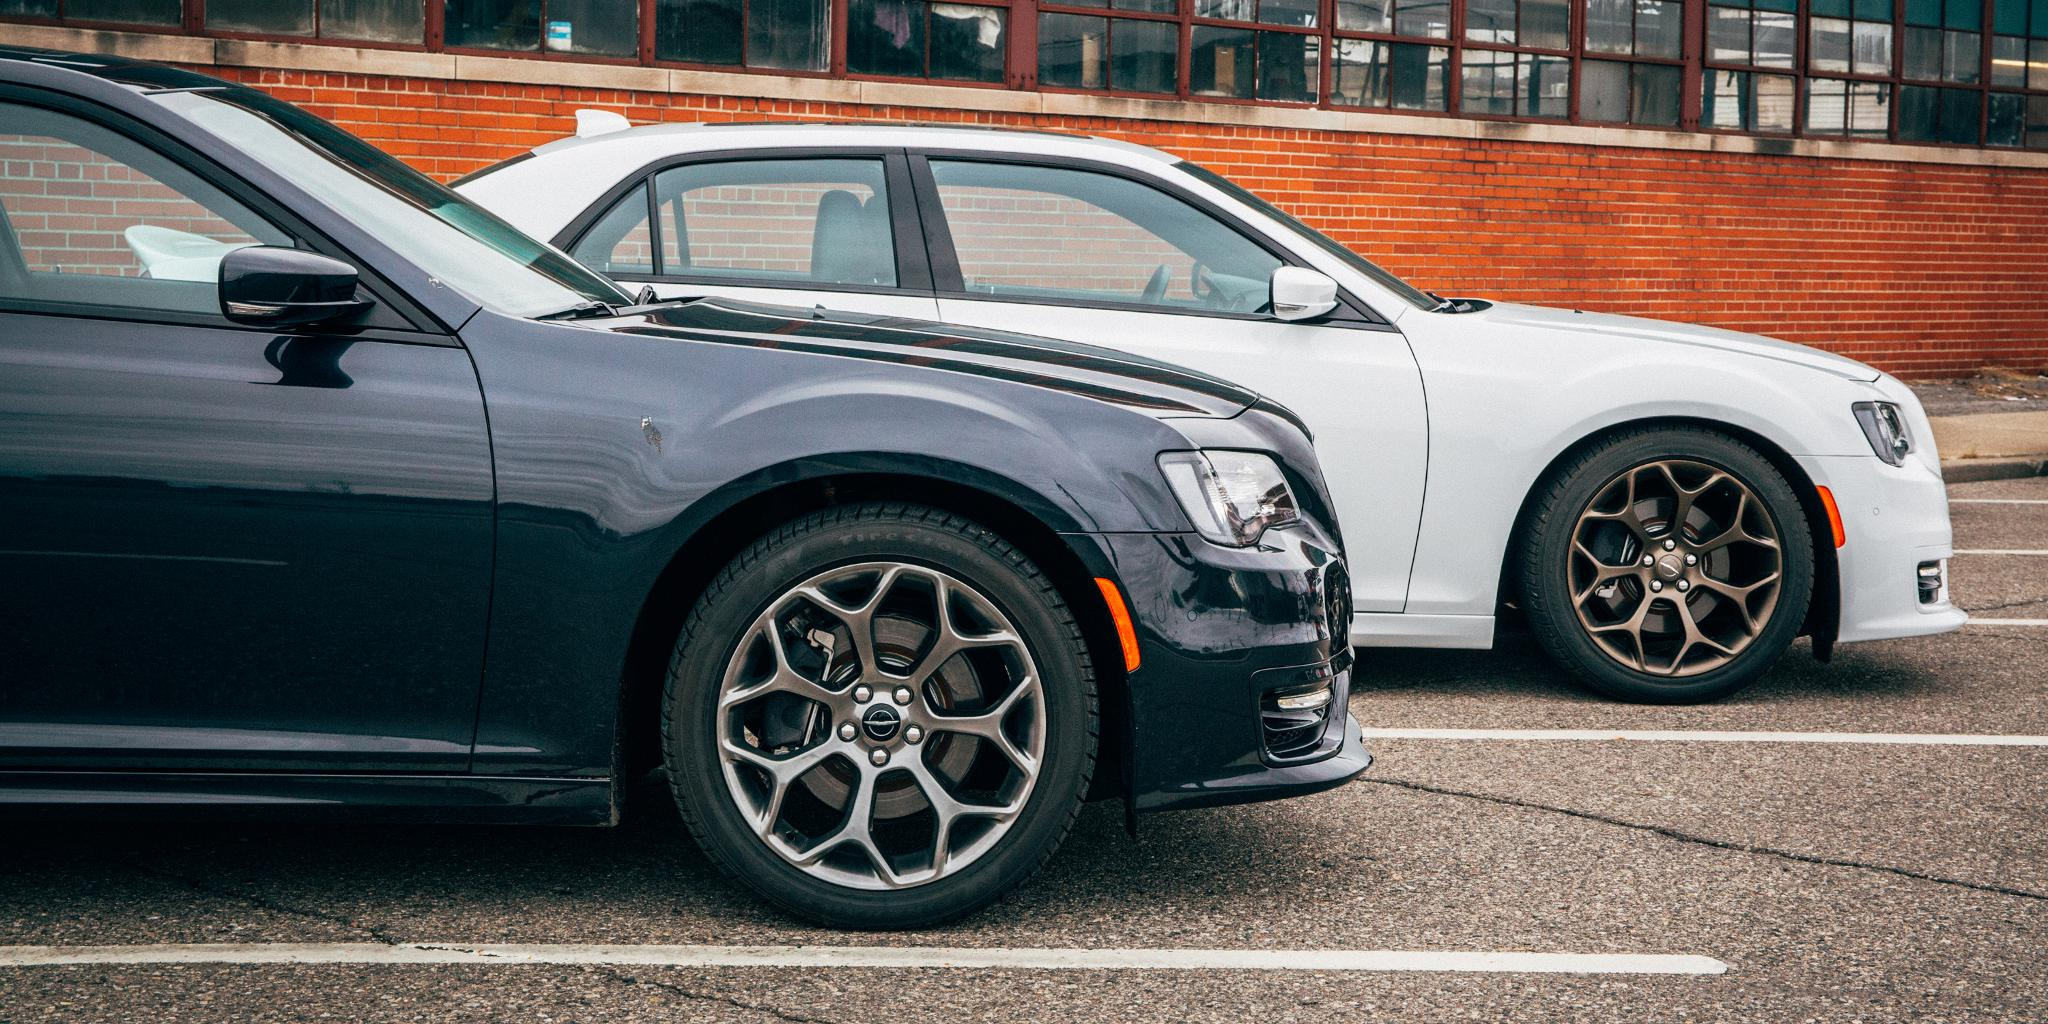 A cut above the rest. #Chrysler300 #wheelwednesday https://t.co/xpBD9dKt5P